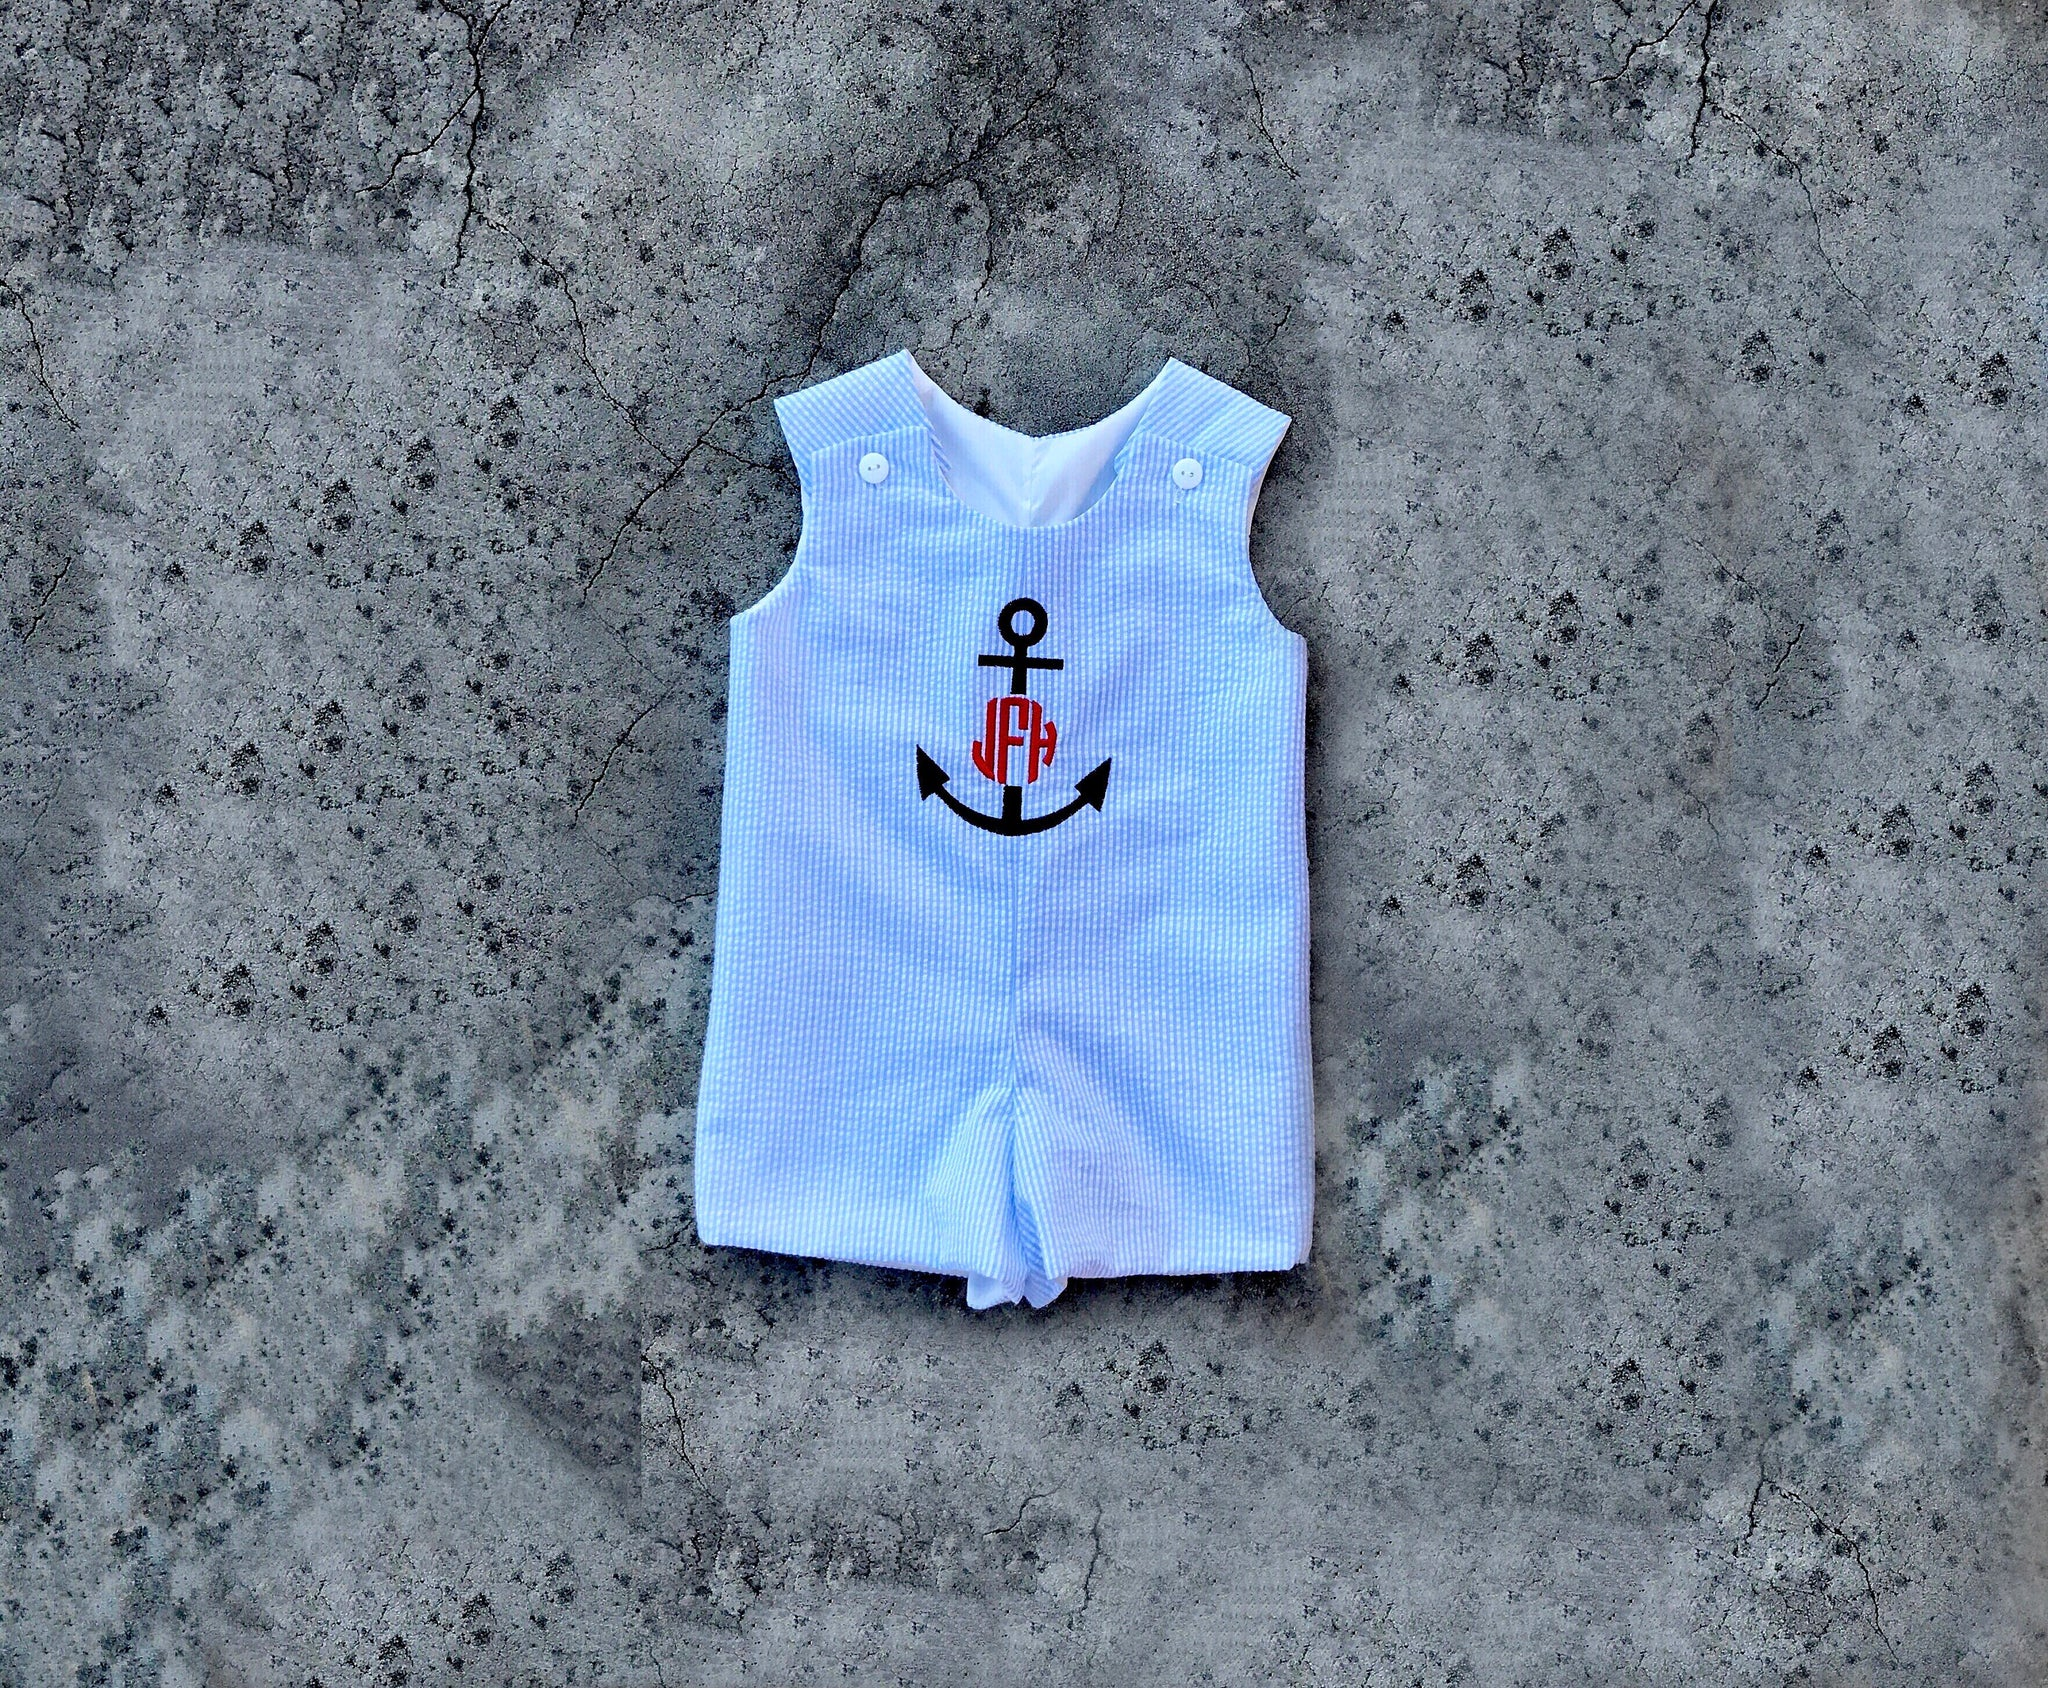 monogram baby boy clothes personalized boy outfit little boy